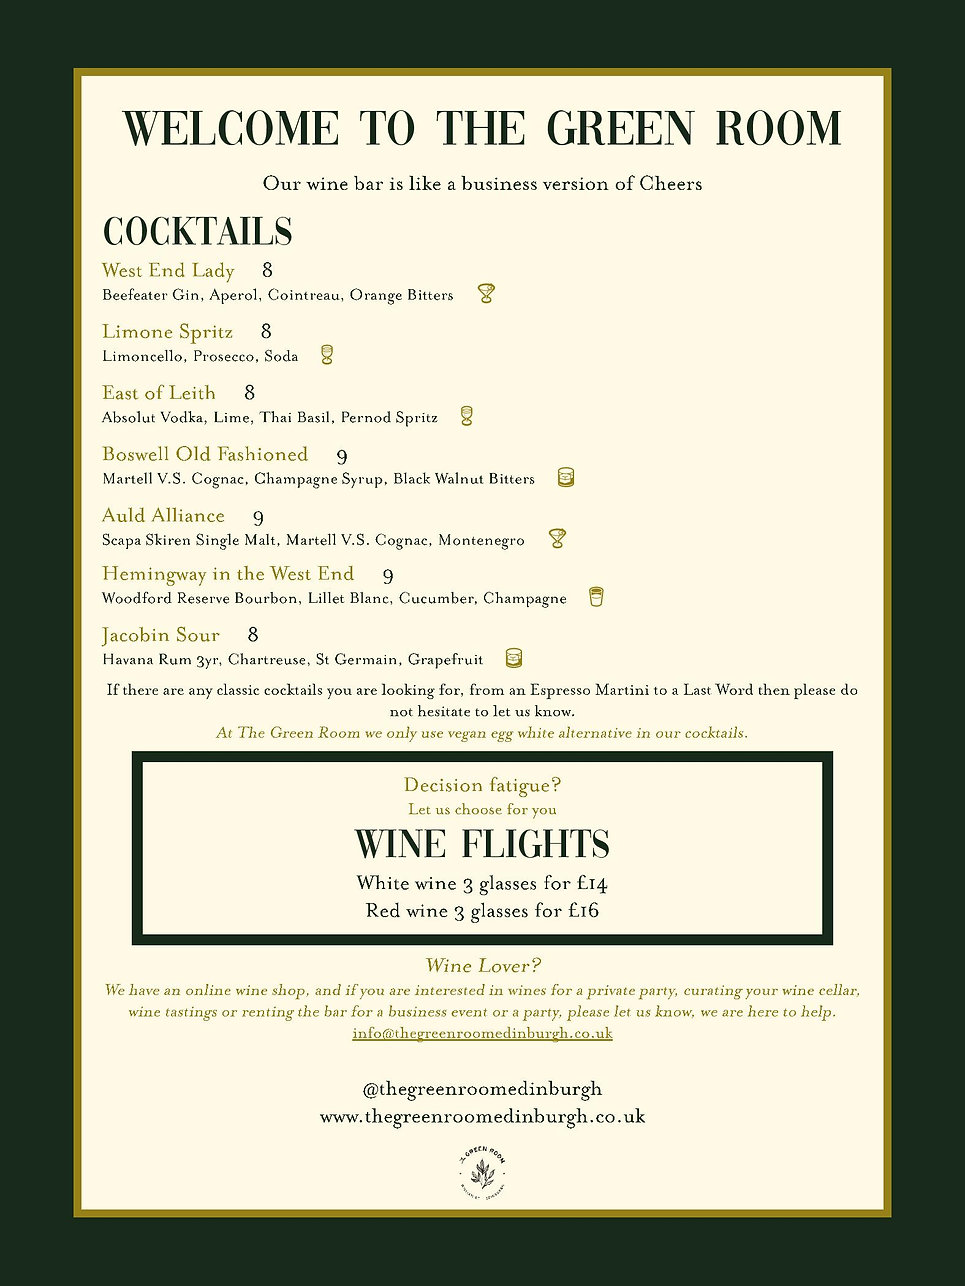 An image of the menu featuring Cocktails and Wine Flight prices